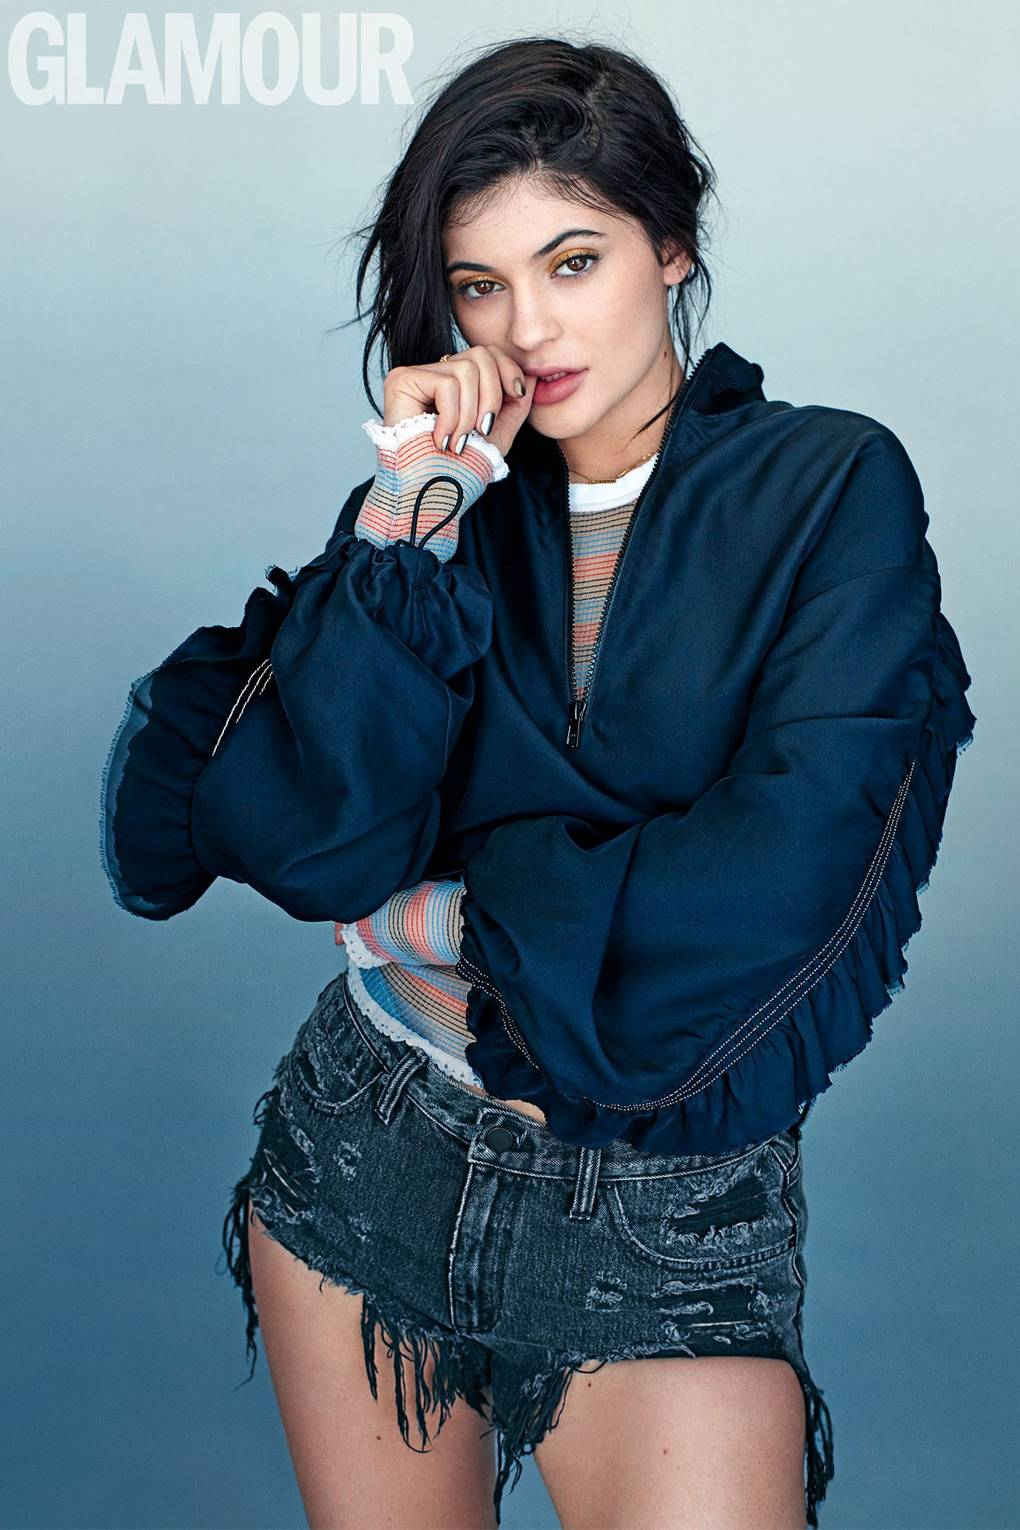 Kylie Jenner Glamour Interview I M An Inspiration Glamour Uk